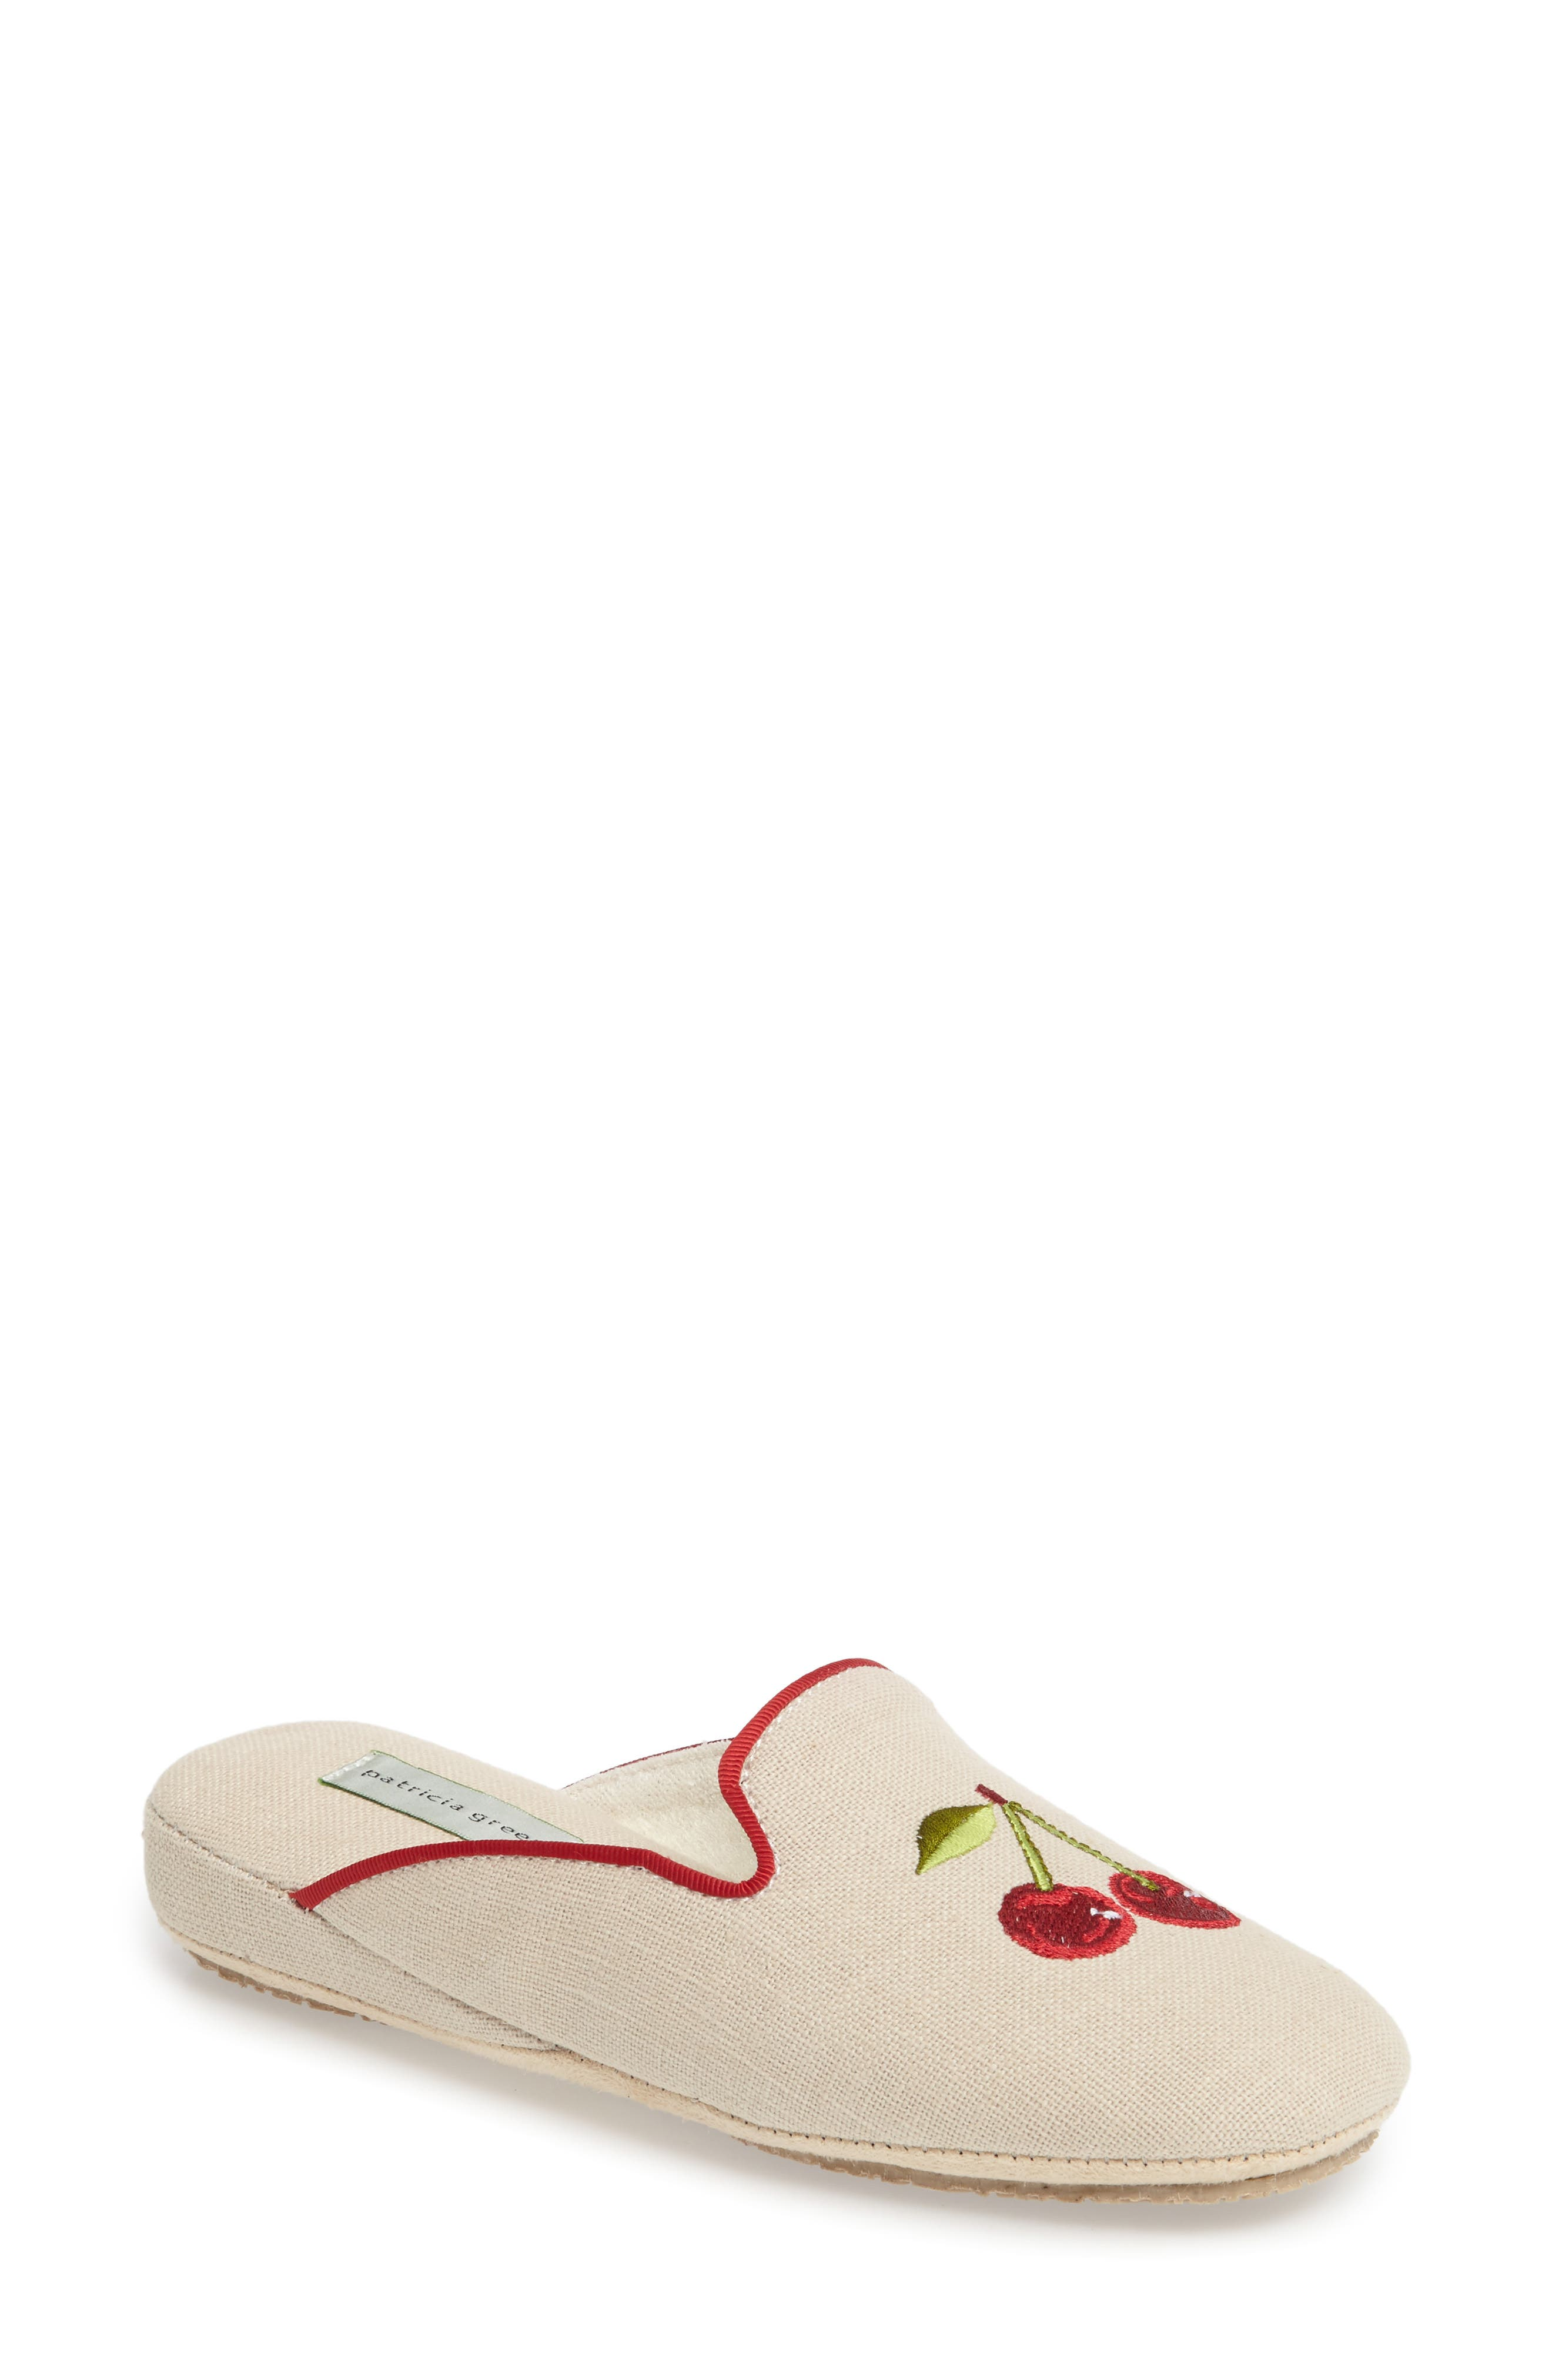 Cherries Slipper,                         Main,                         color, Natural Fabric